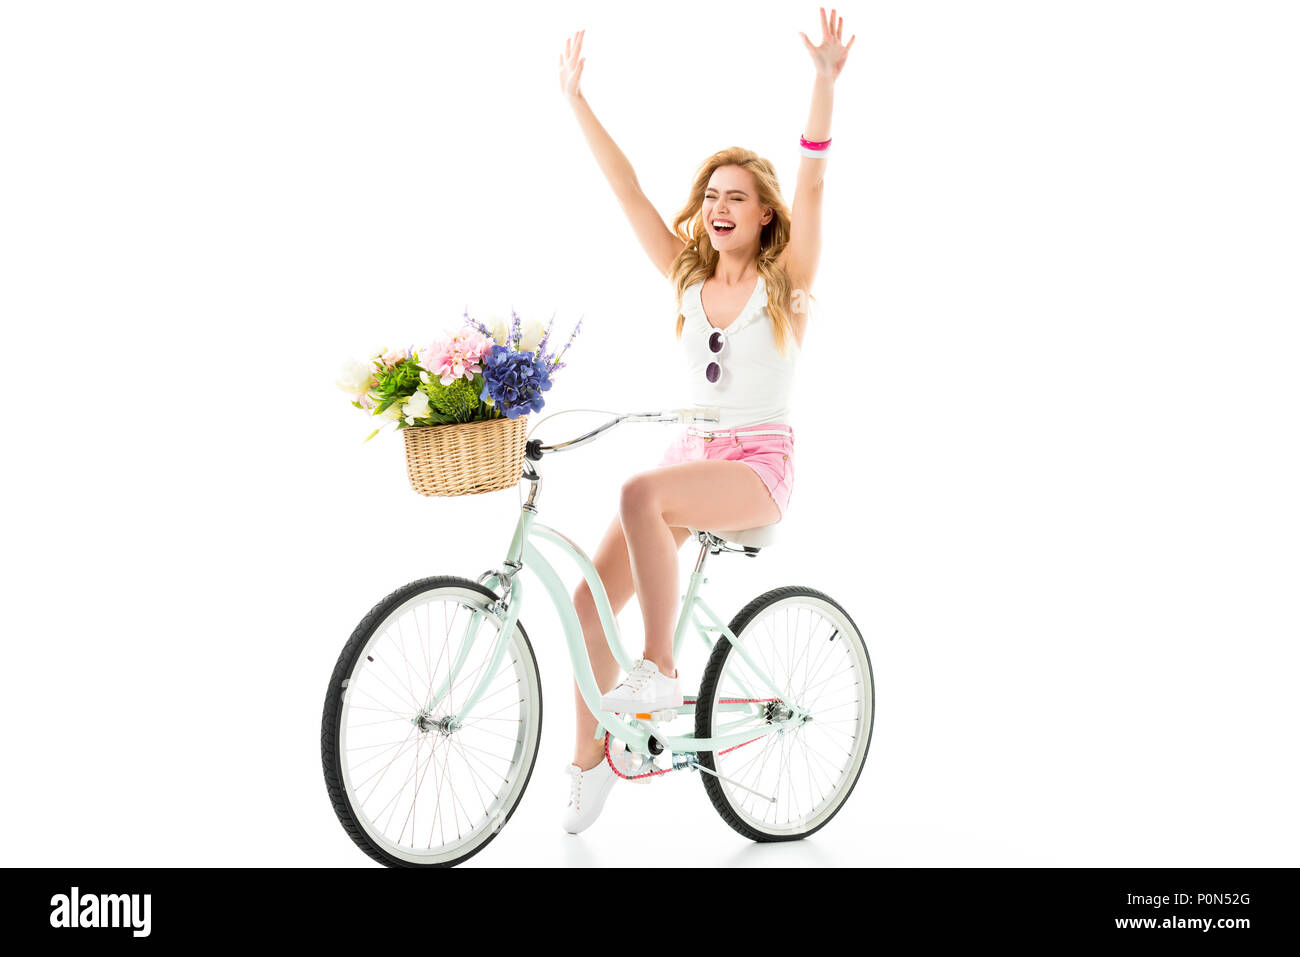 Blonde woman riding bicycle with flowers in basket isolated on white - Stock Image